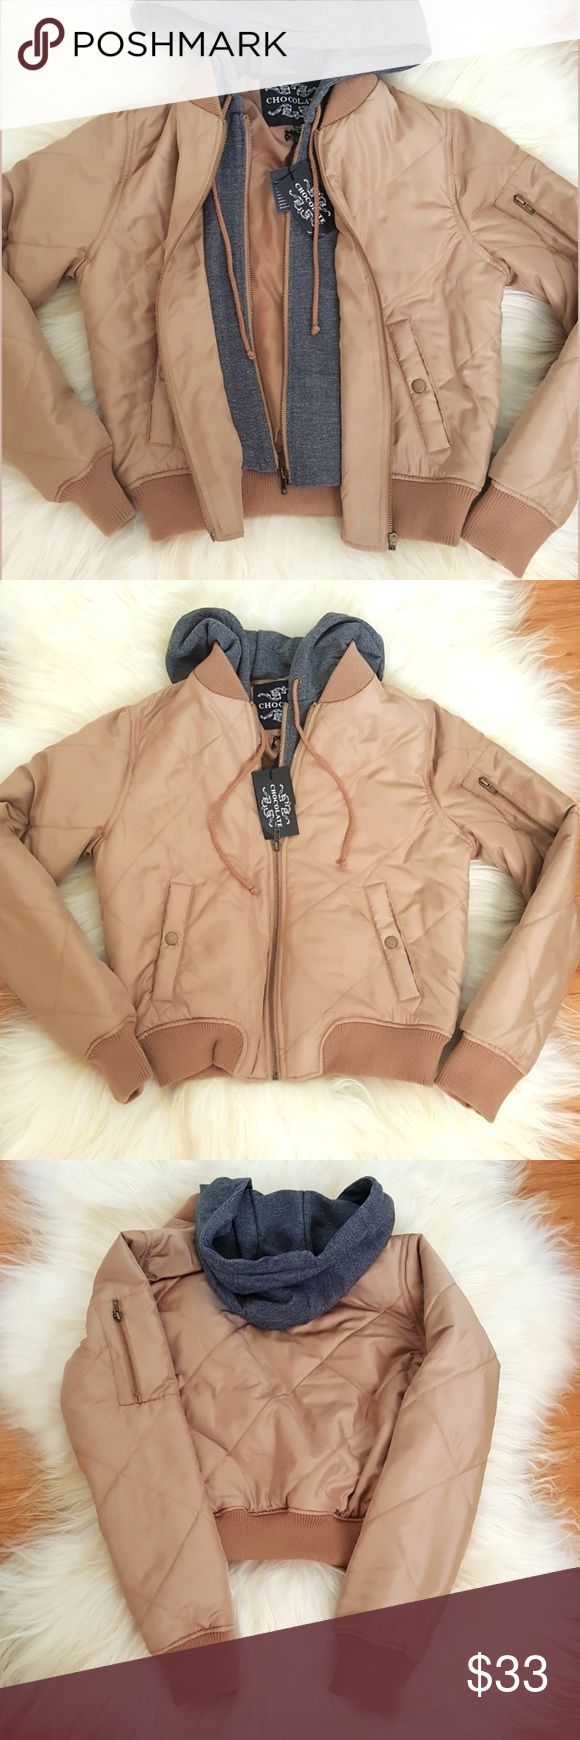 NWT HOODED BOMBER JACKET Medium Beige quilted bomber jacket with grey hood Layered look I would keep it if I didn't have so many jackets ;( Even has a pocket on sleeve Jackets & Coats